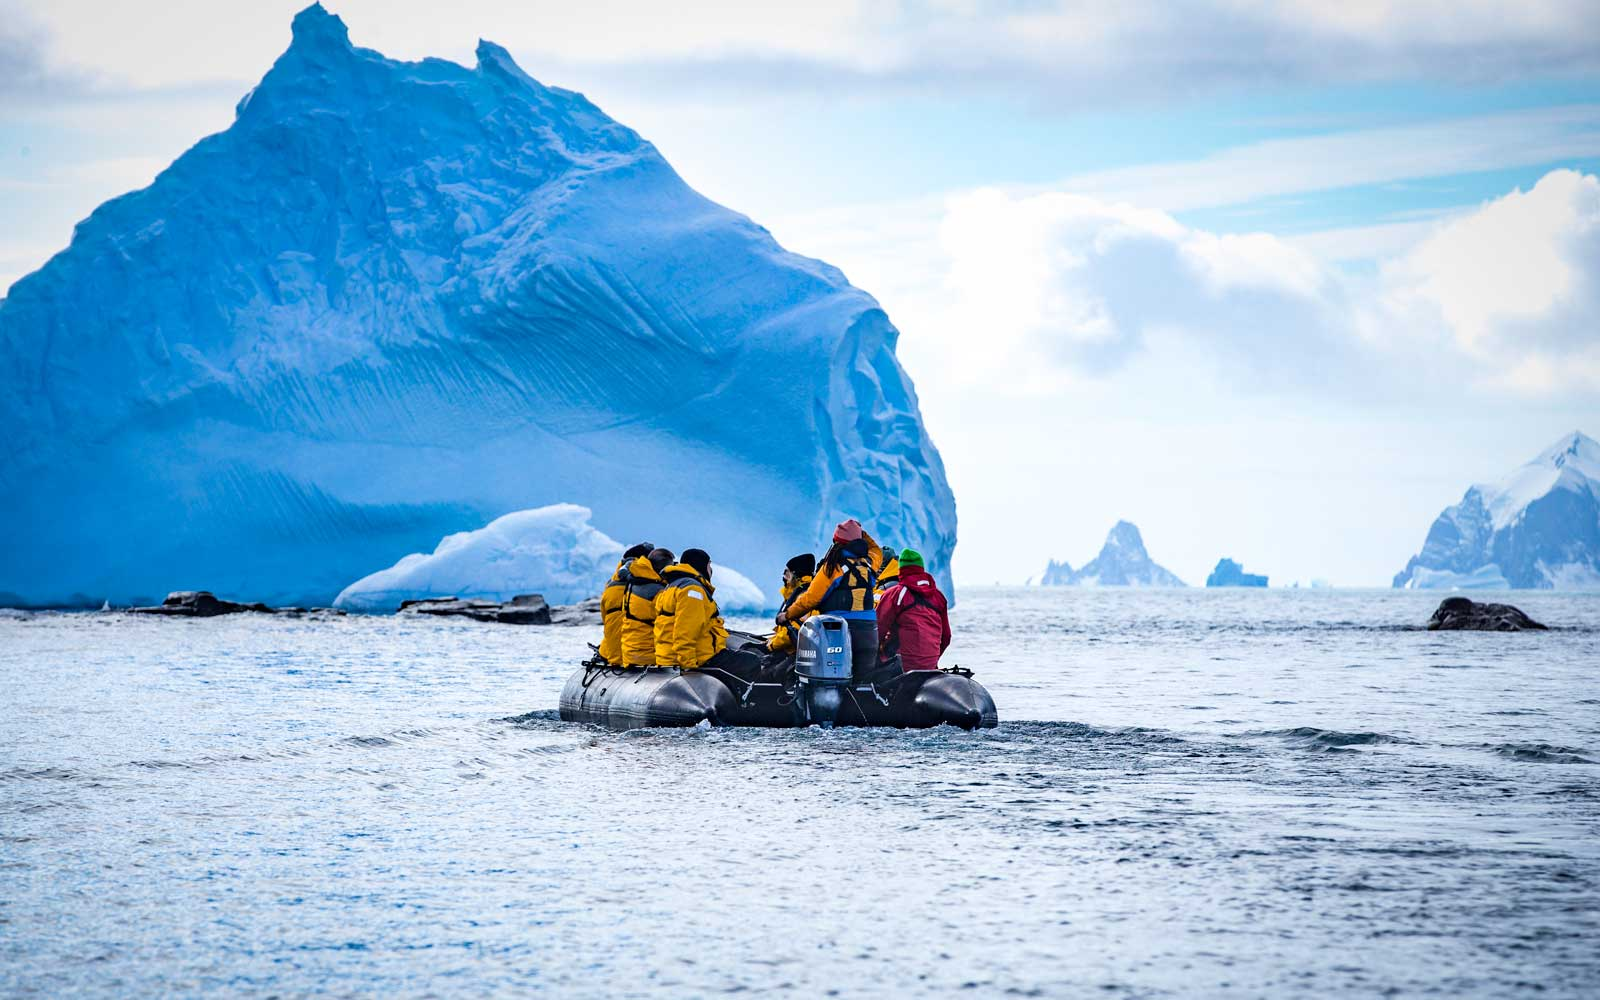 Get 35% off an Epic, All-inclusive Trip to Antarctica Through Peregrine Adventures